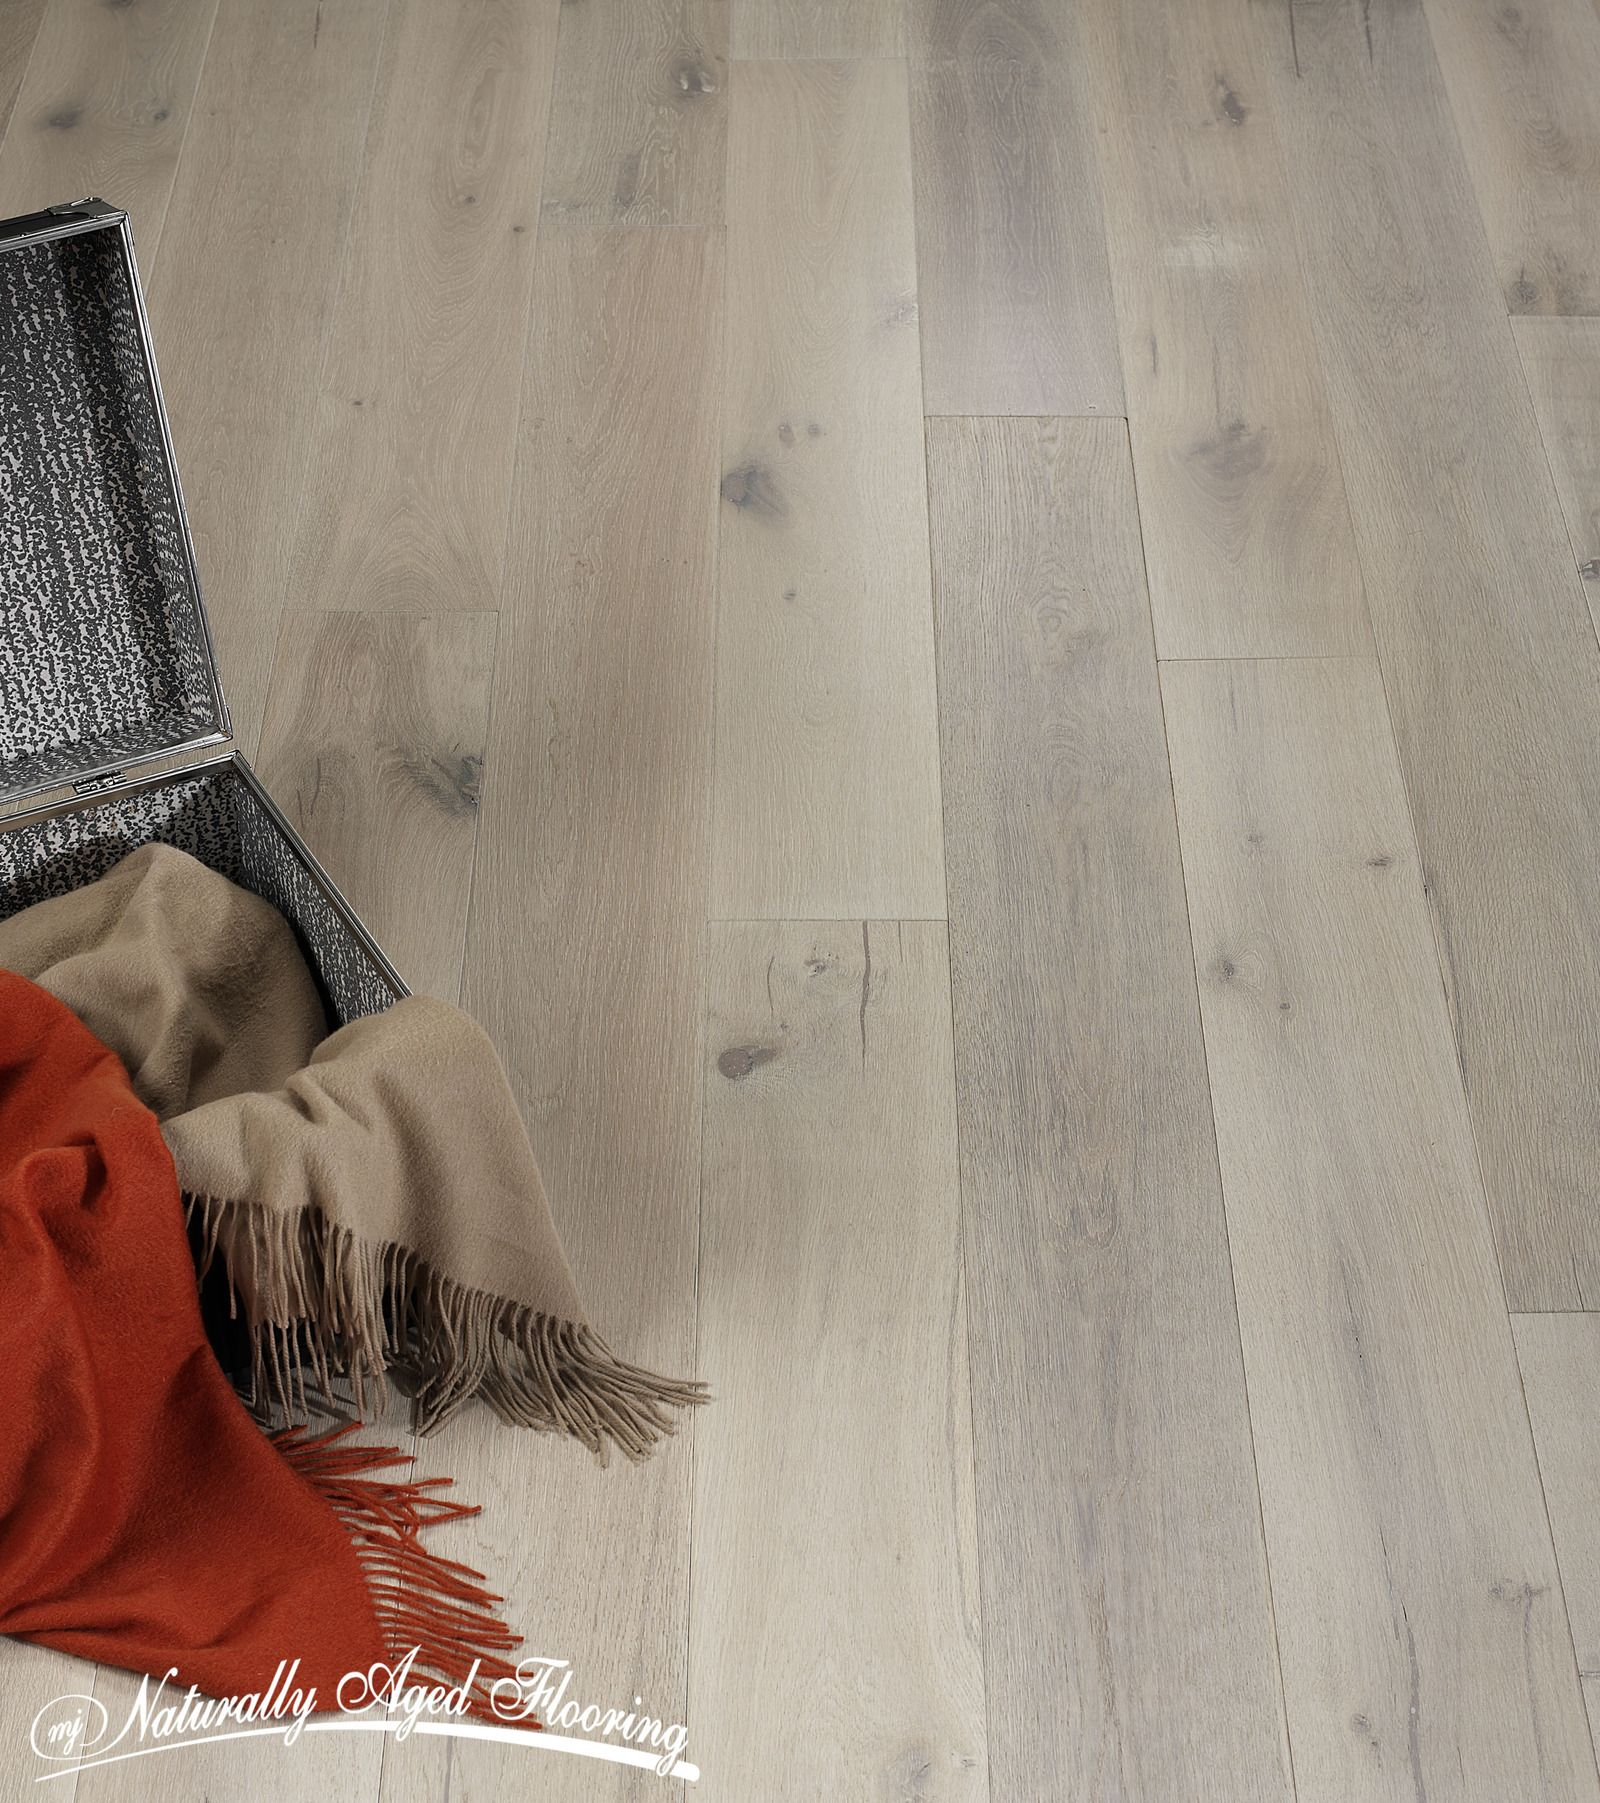 Naturally Aged Flooring Speckled White Mc Sw 7 5 Part Of The